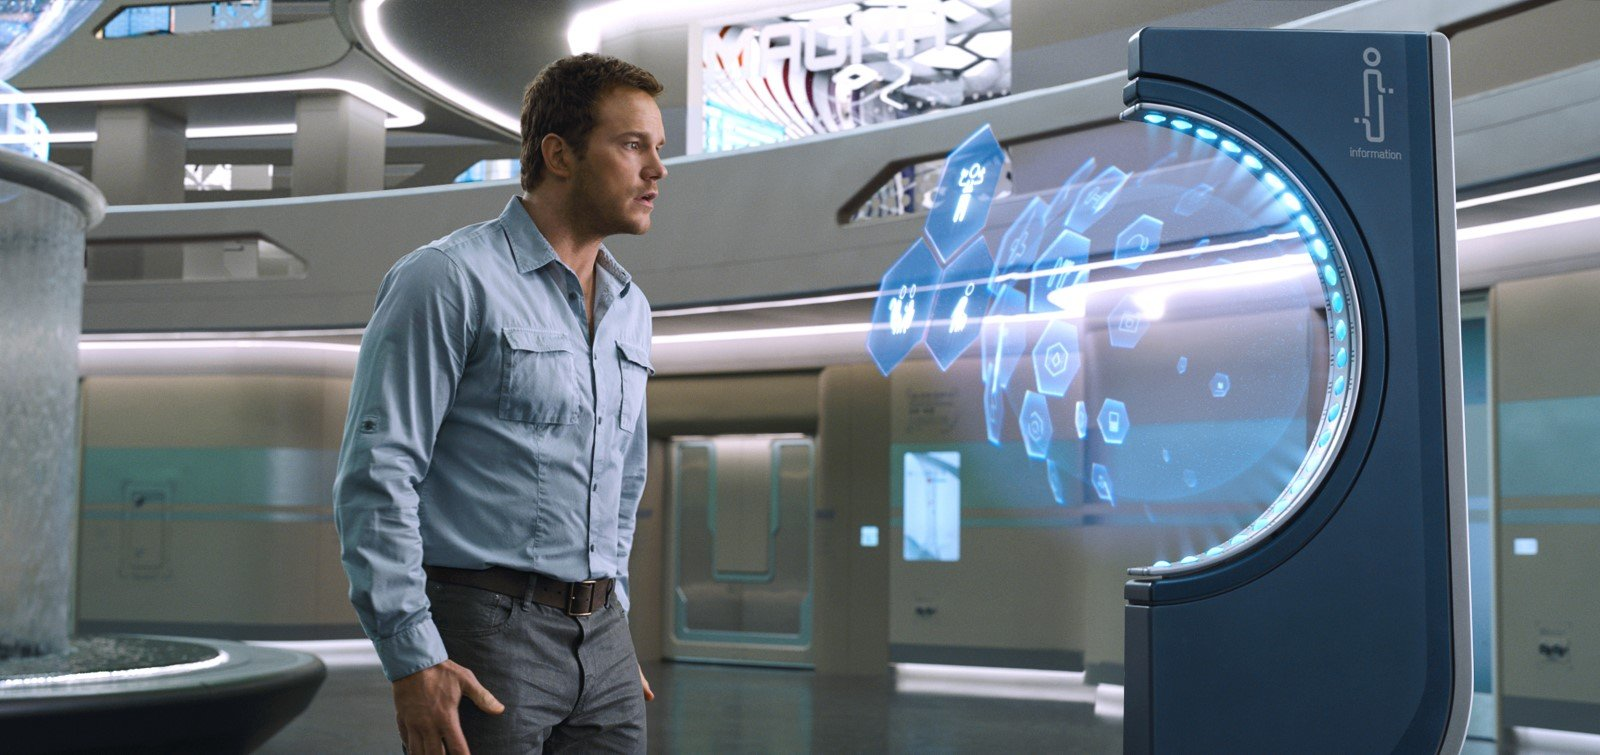 Chris Pratt And Jennifer Lawrence Shoot For The Stars In All-New Passengers Trailer